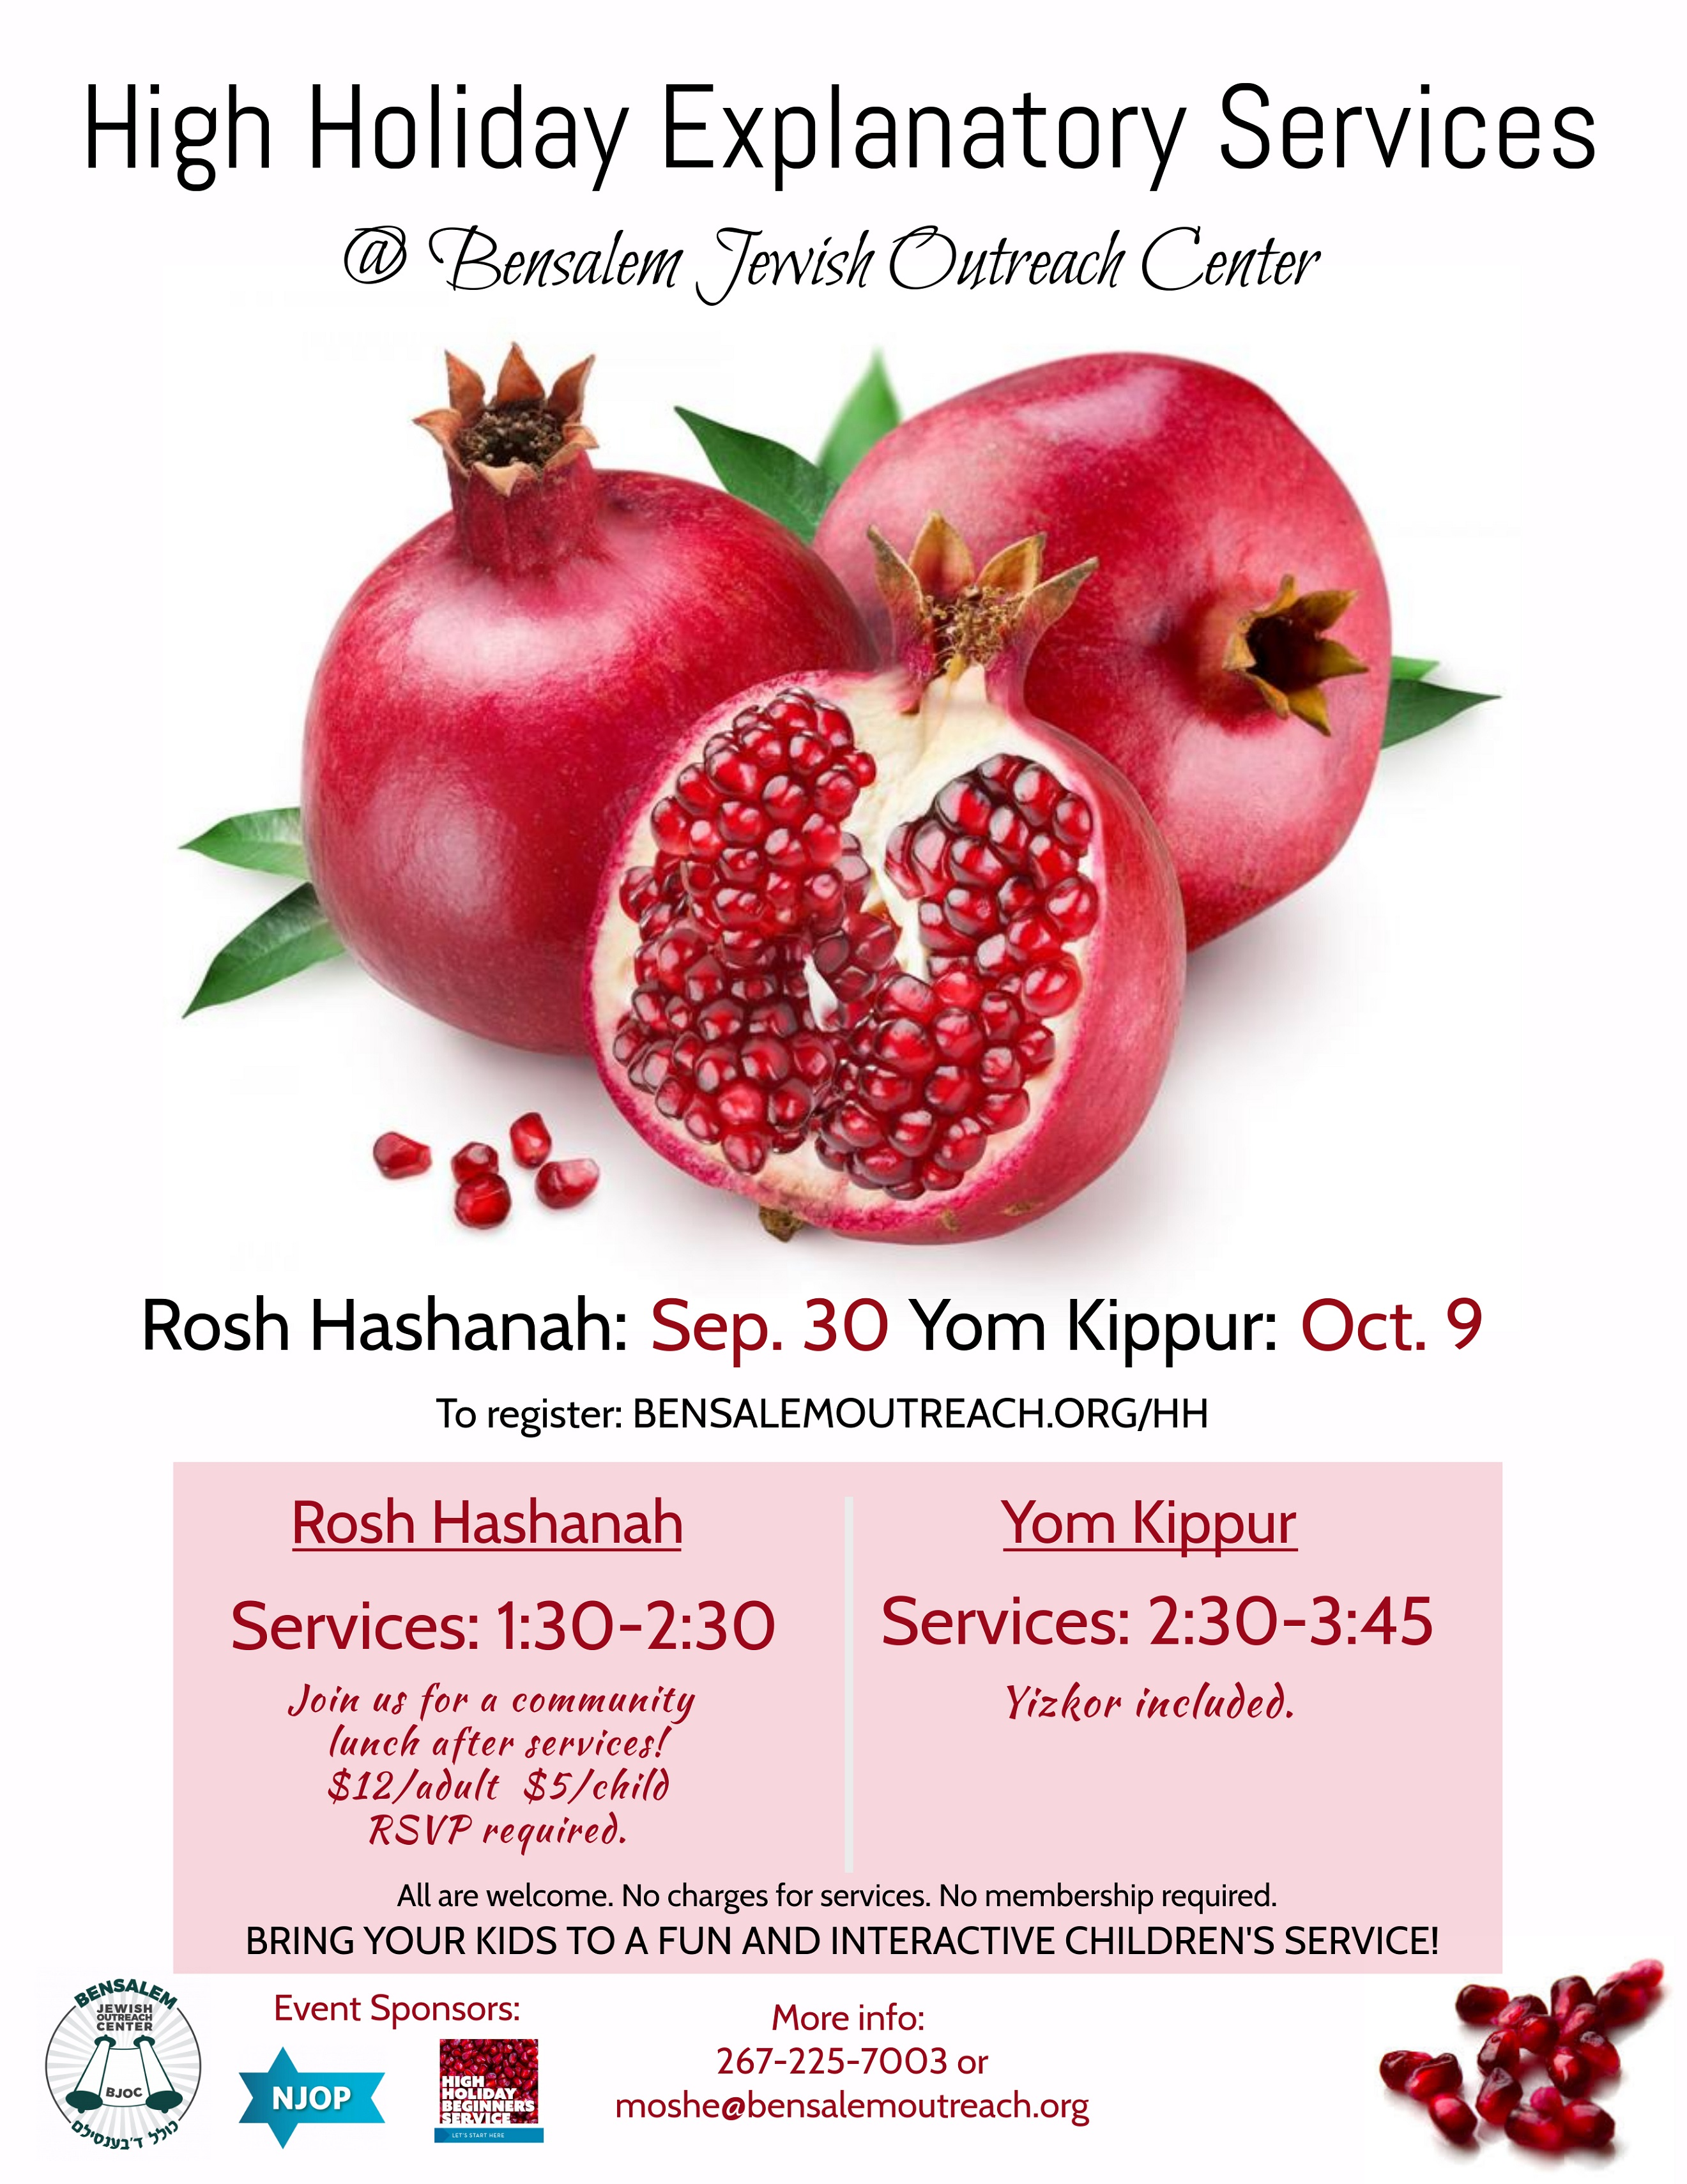 High Holiday's Explanatory Services and Rosh Hashanah Meals